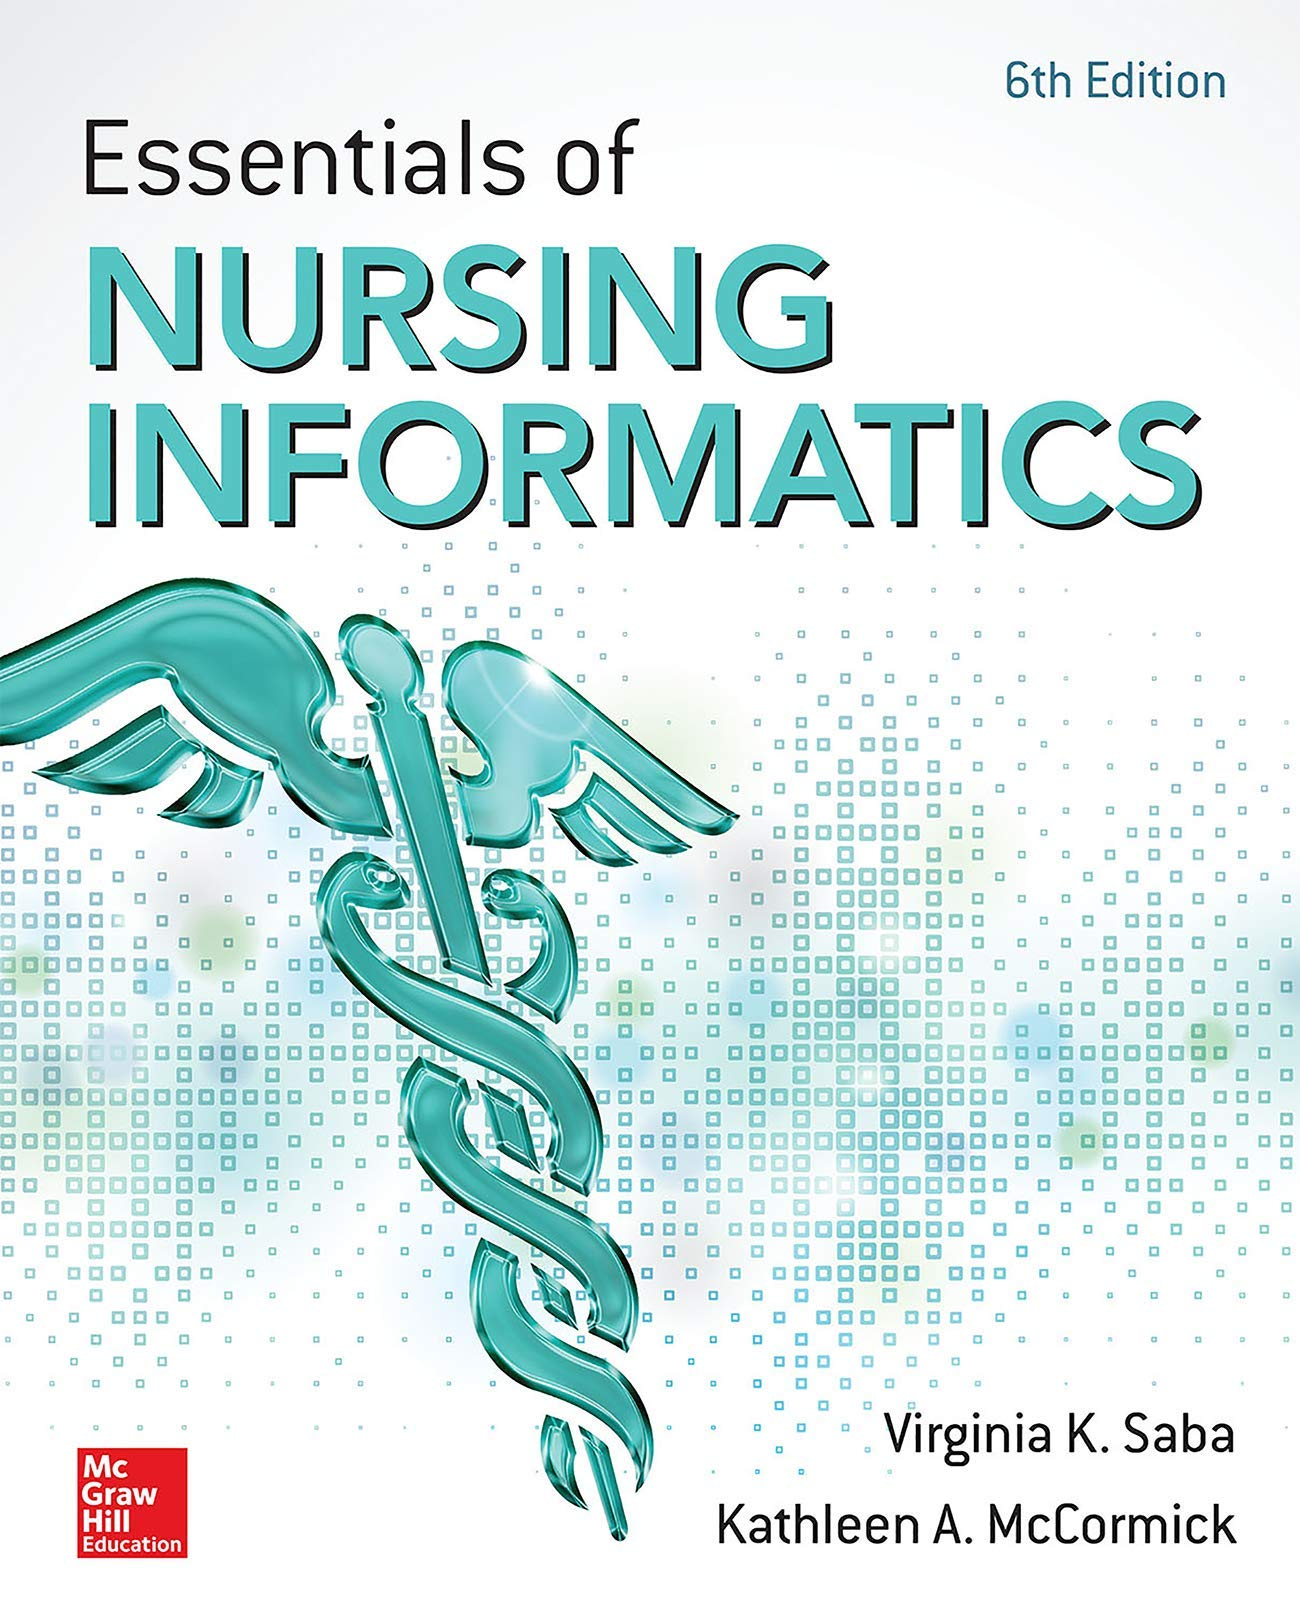 Essentials of Nursing Informatics, 6th Edition by McGraw-Hill Education / Medical